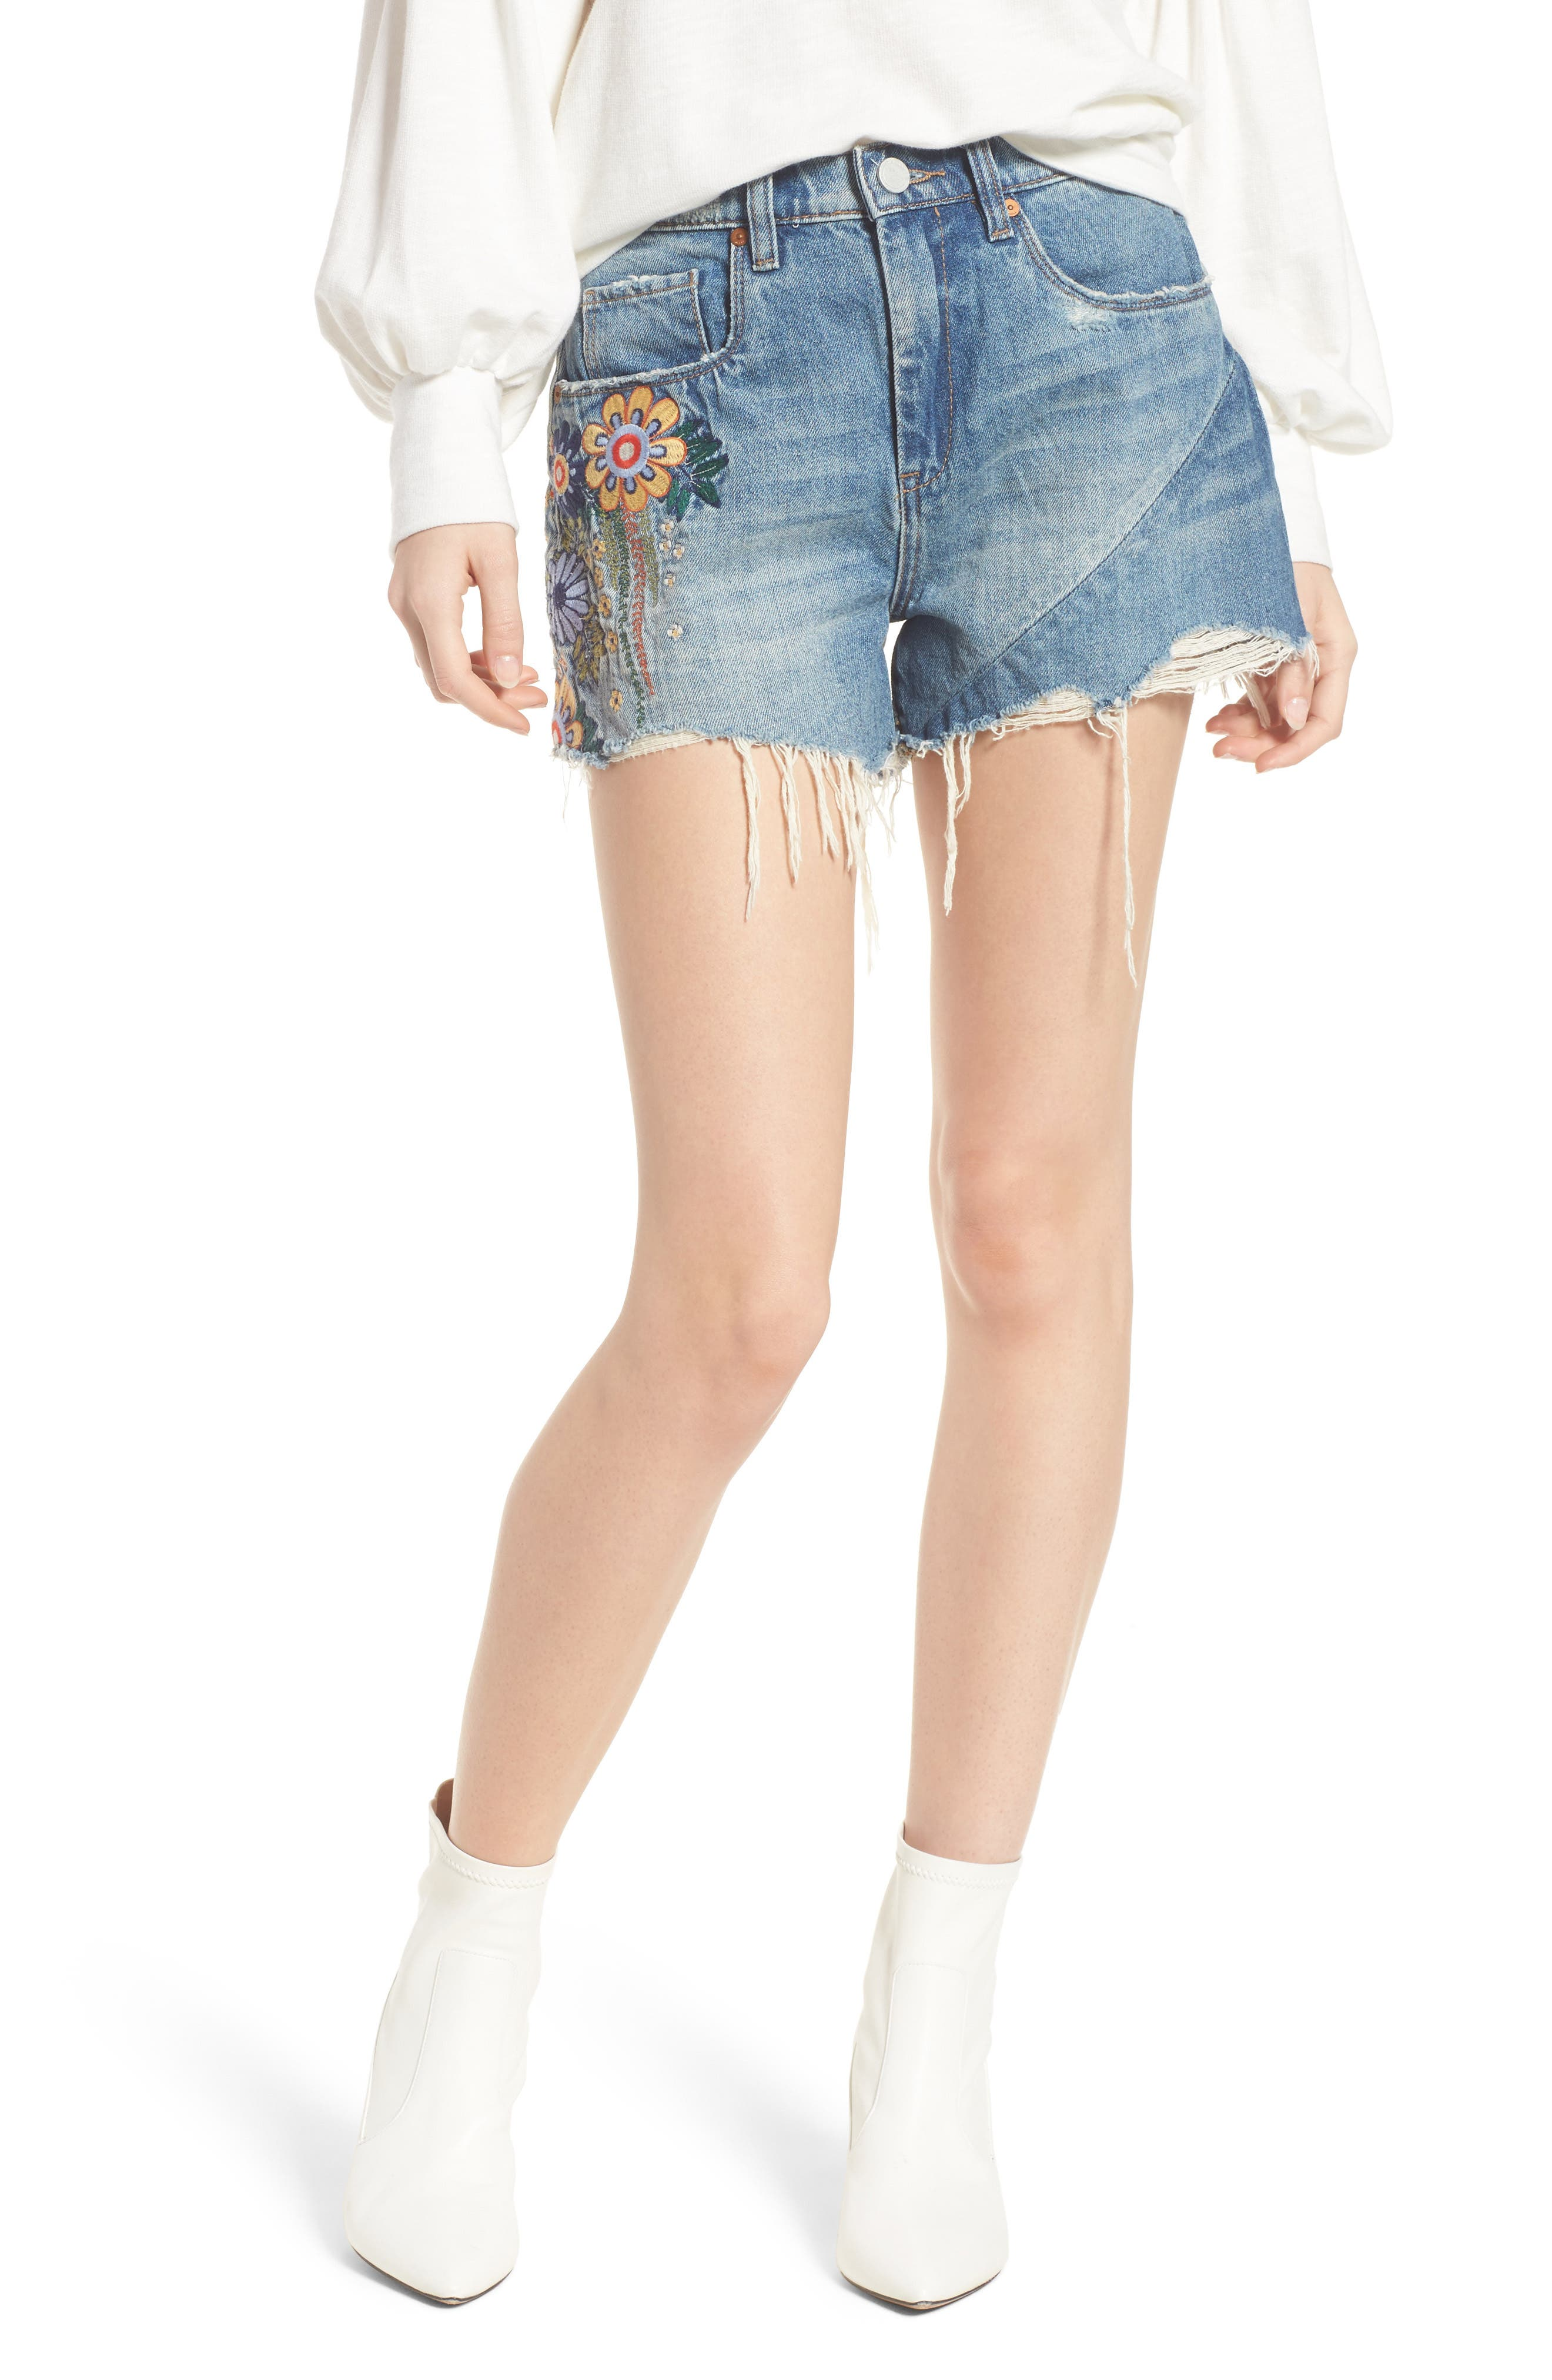 Sonic Bloom Embroidered Denim Shorts,                             Main thumbnail 1, color,                             400